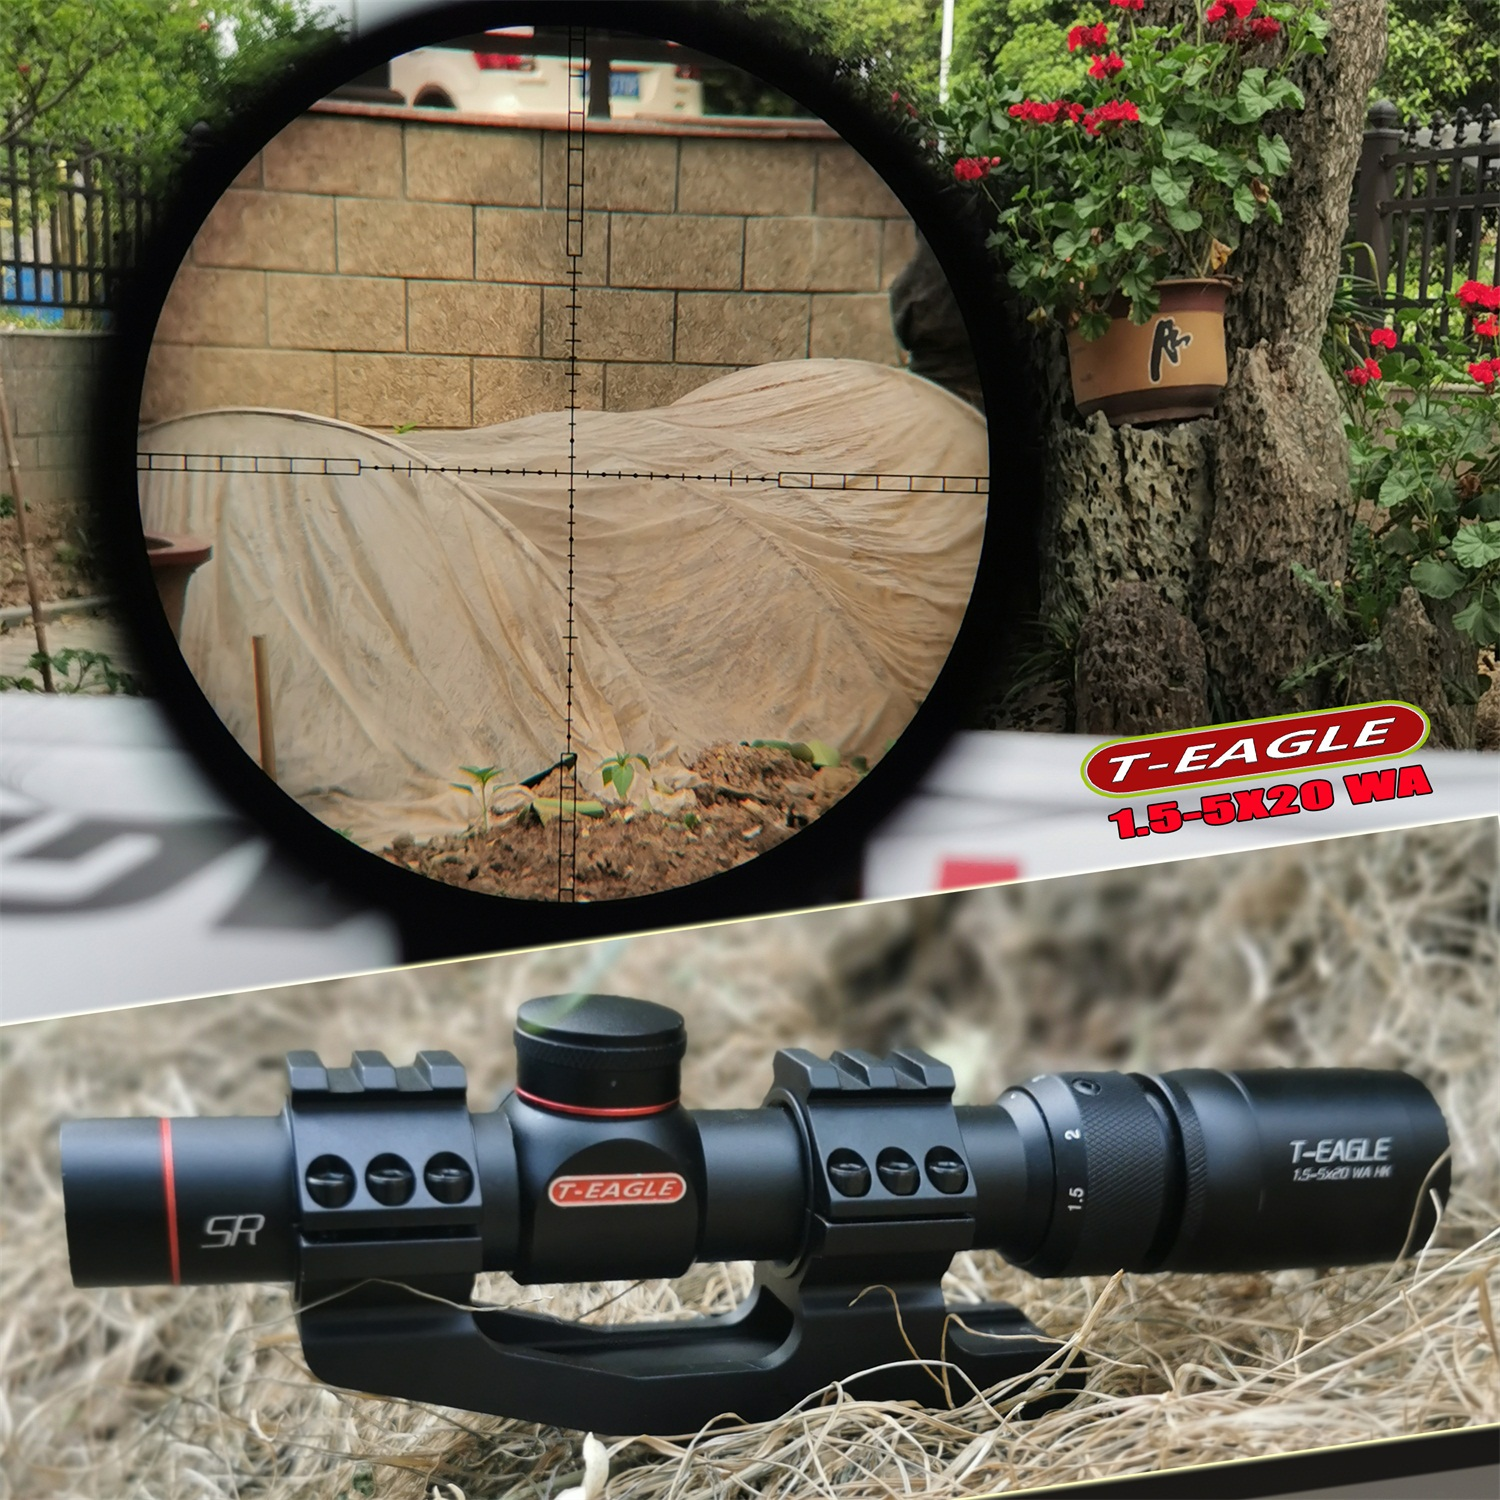 TEAGLE R1.5-5X20 Tactical RiflesScope Sniper Hunting Optics Riflescopes Airsoftsports Shock Proof Super Vision Rifle Scope Sight